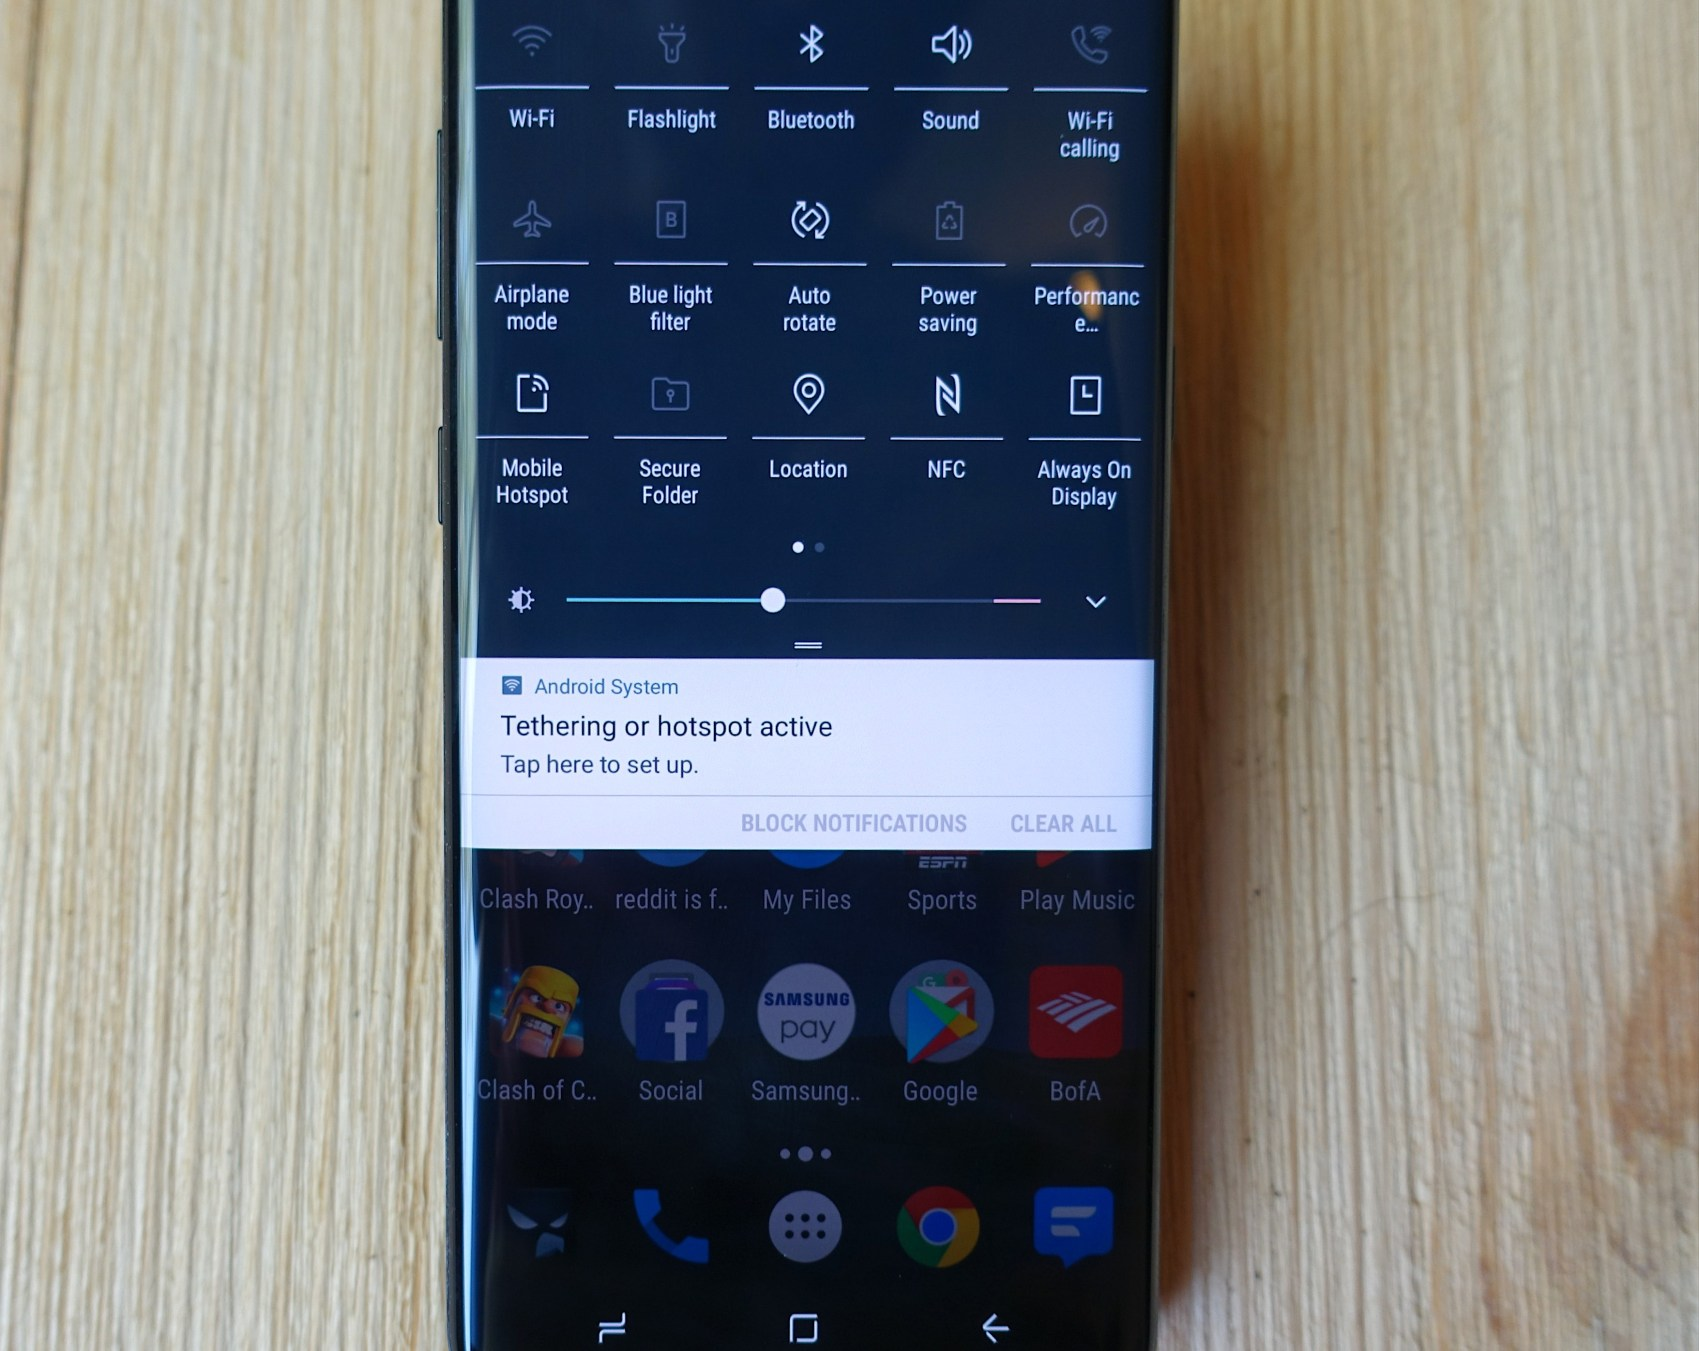 How to Use the Galaxy S9 as a Mobile Hotspot